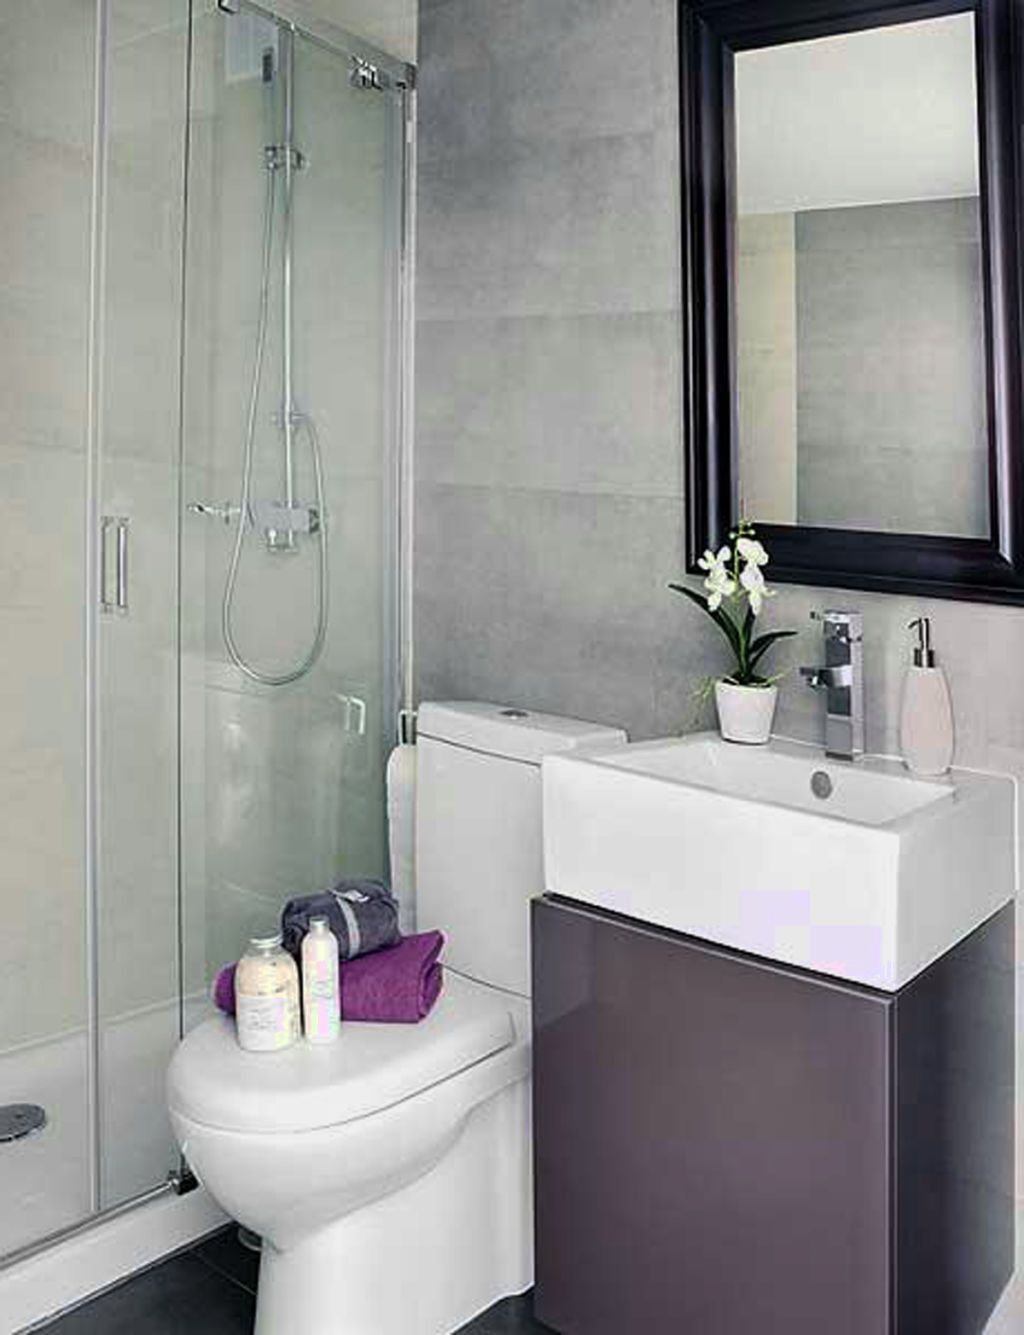 Bathroom Renovations Kingston Ontario: Small Bathrooms Floor Tiles Best Interior Design Bathroom